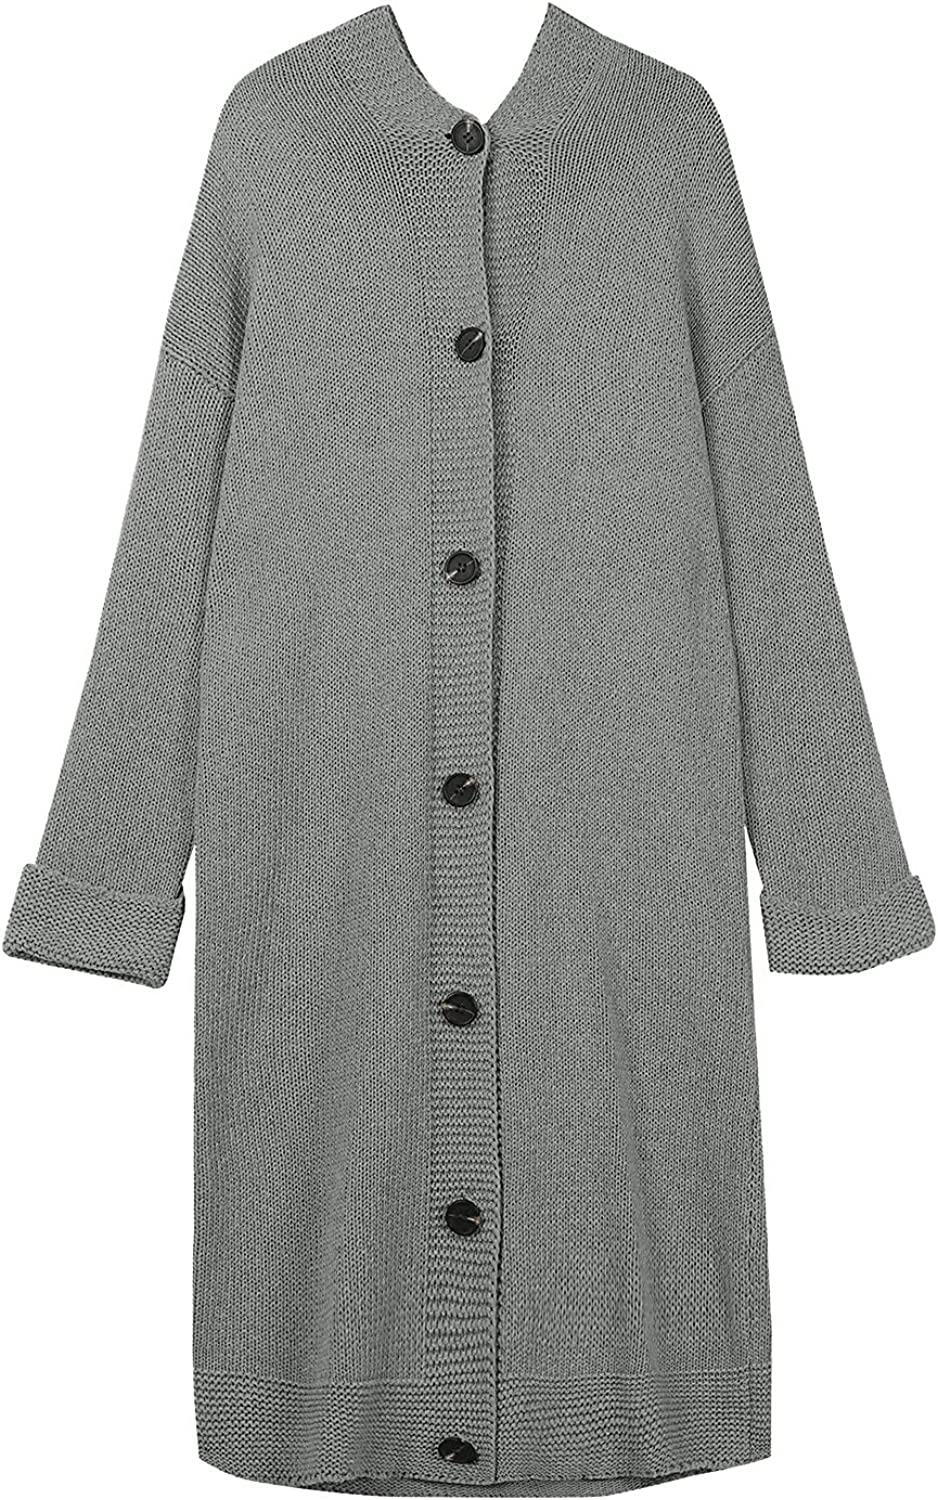 Ranking TOP5 Womens Open Front Cardigan Sweaters Sleeve Button Cas low-pricing Long Solid